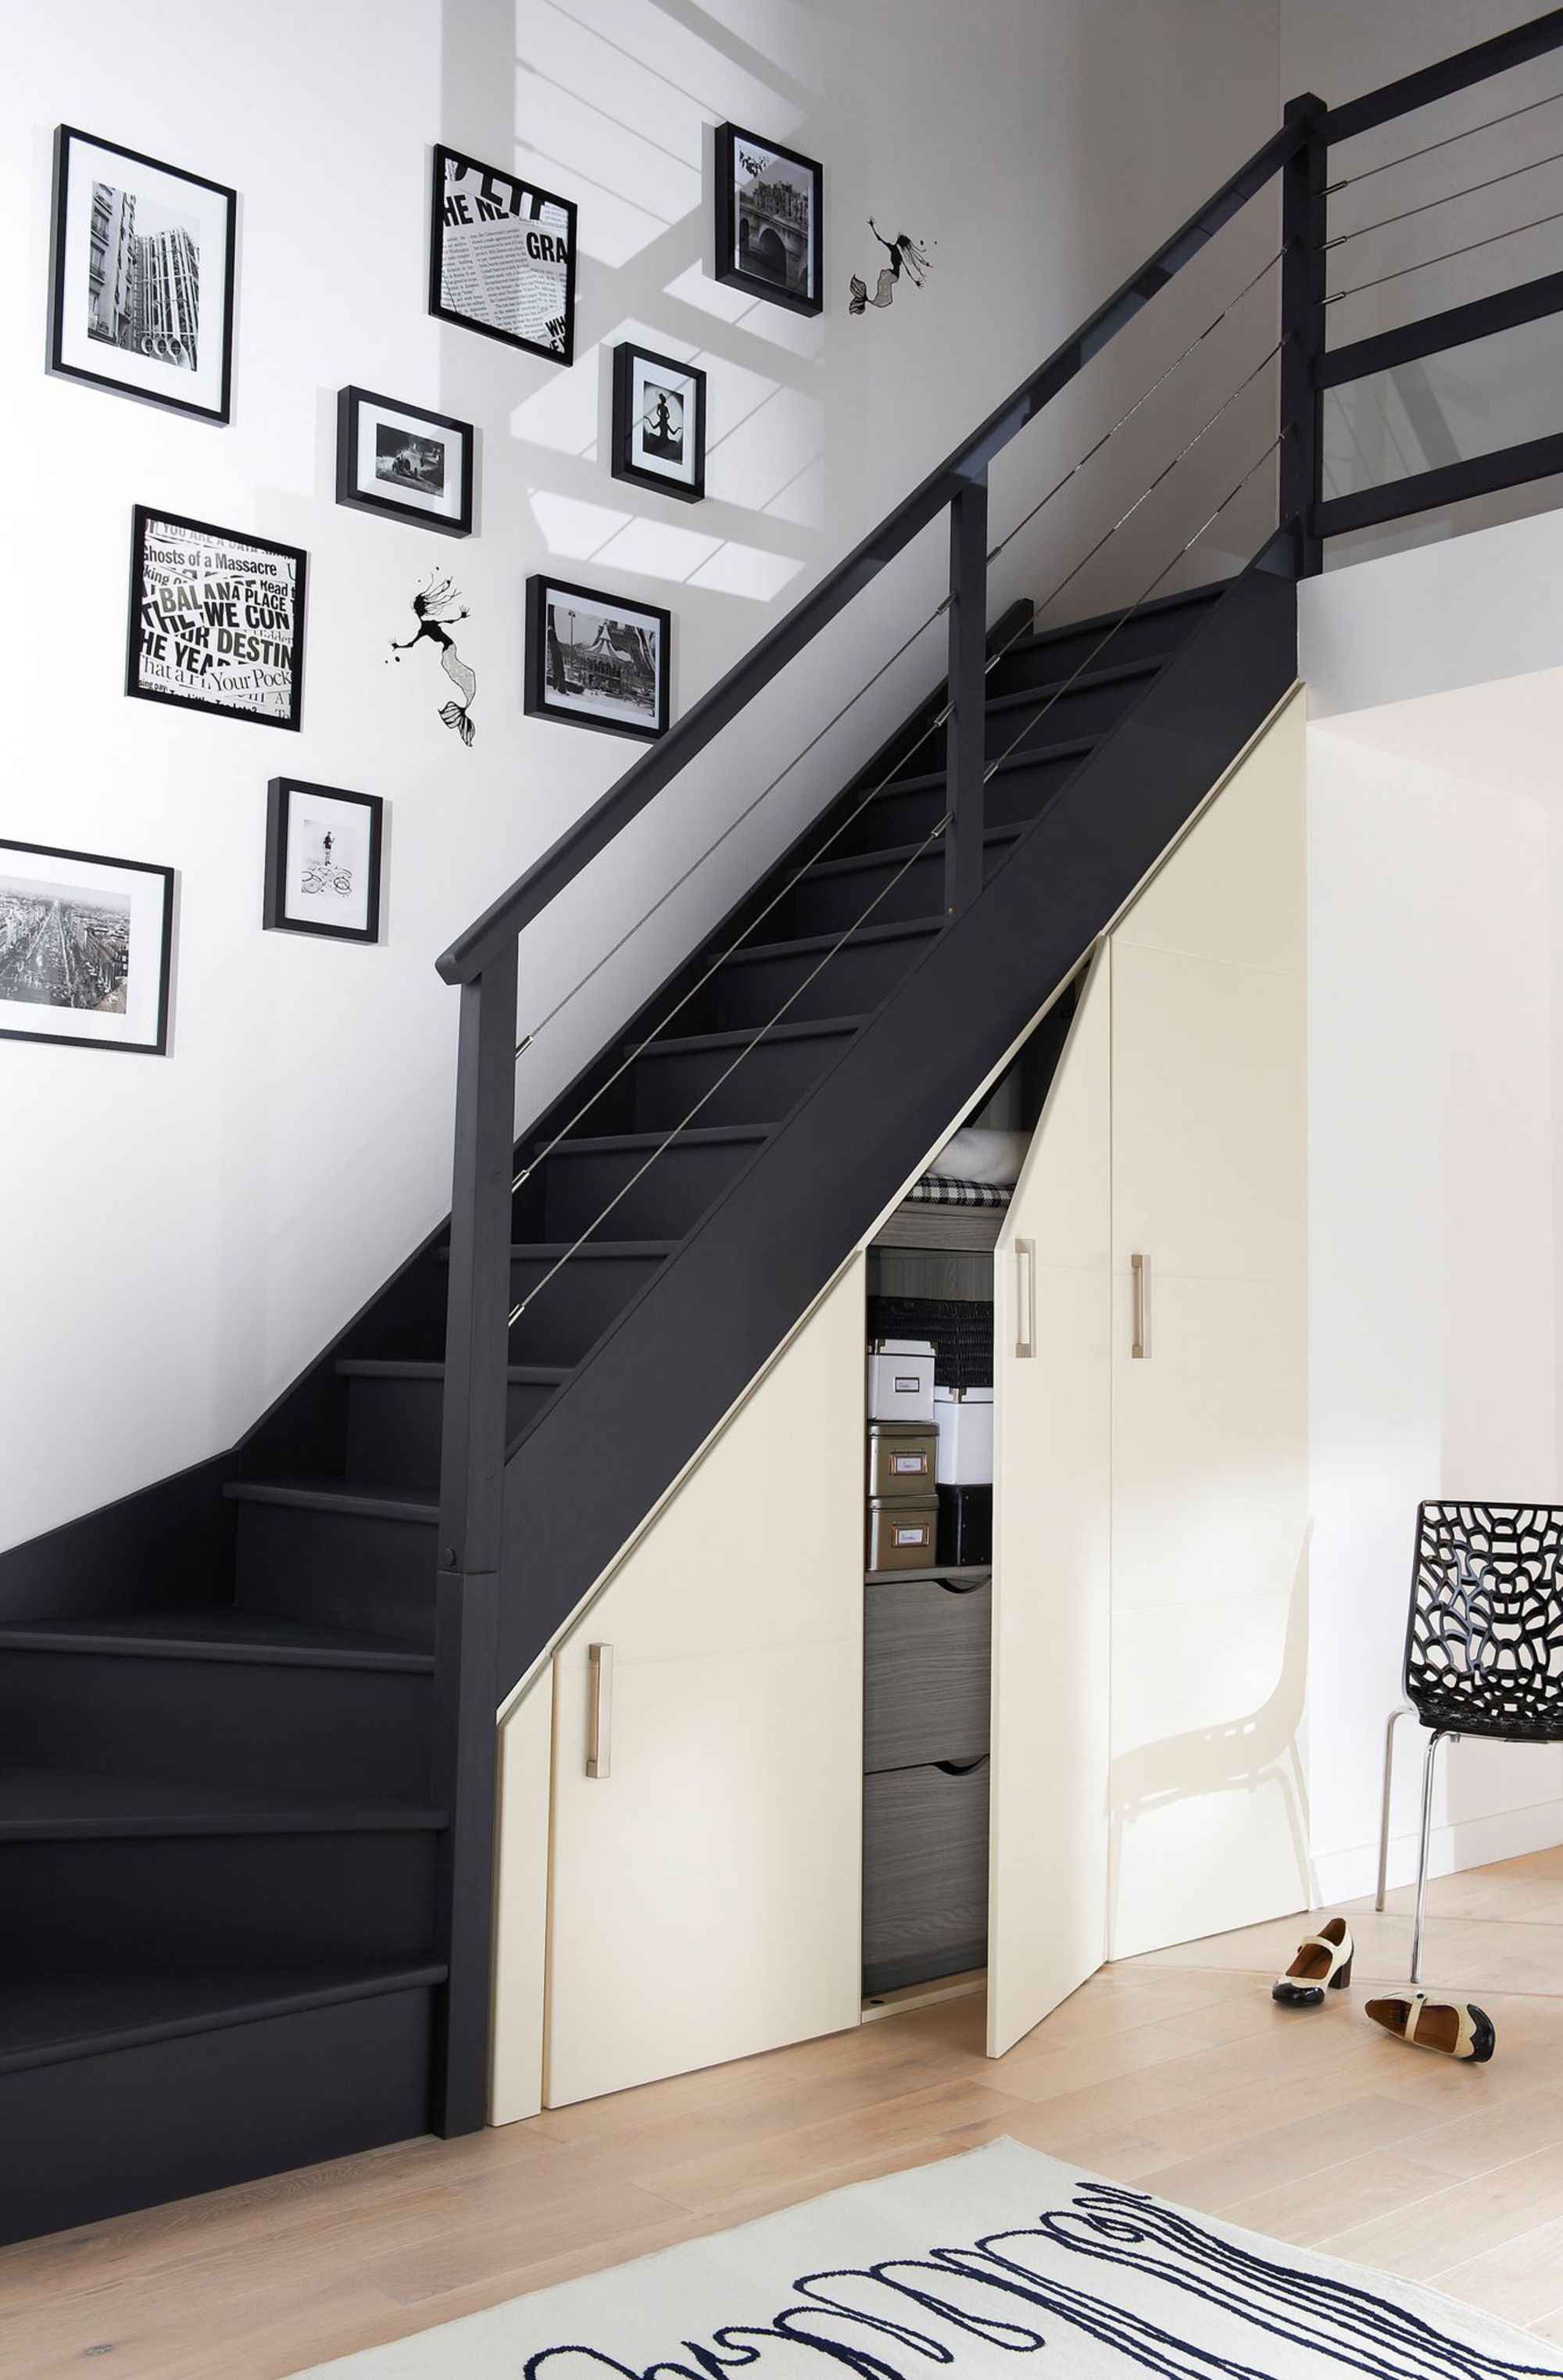 mon premier appartement mr bricolage r union 2018 pinterest. Black Bedroom Furniture Sets. Home Design Ideas